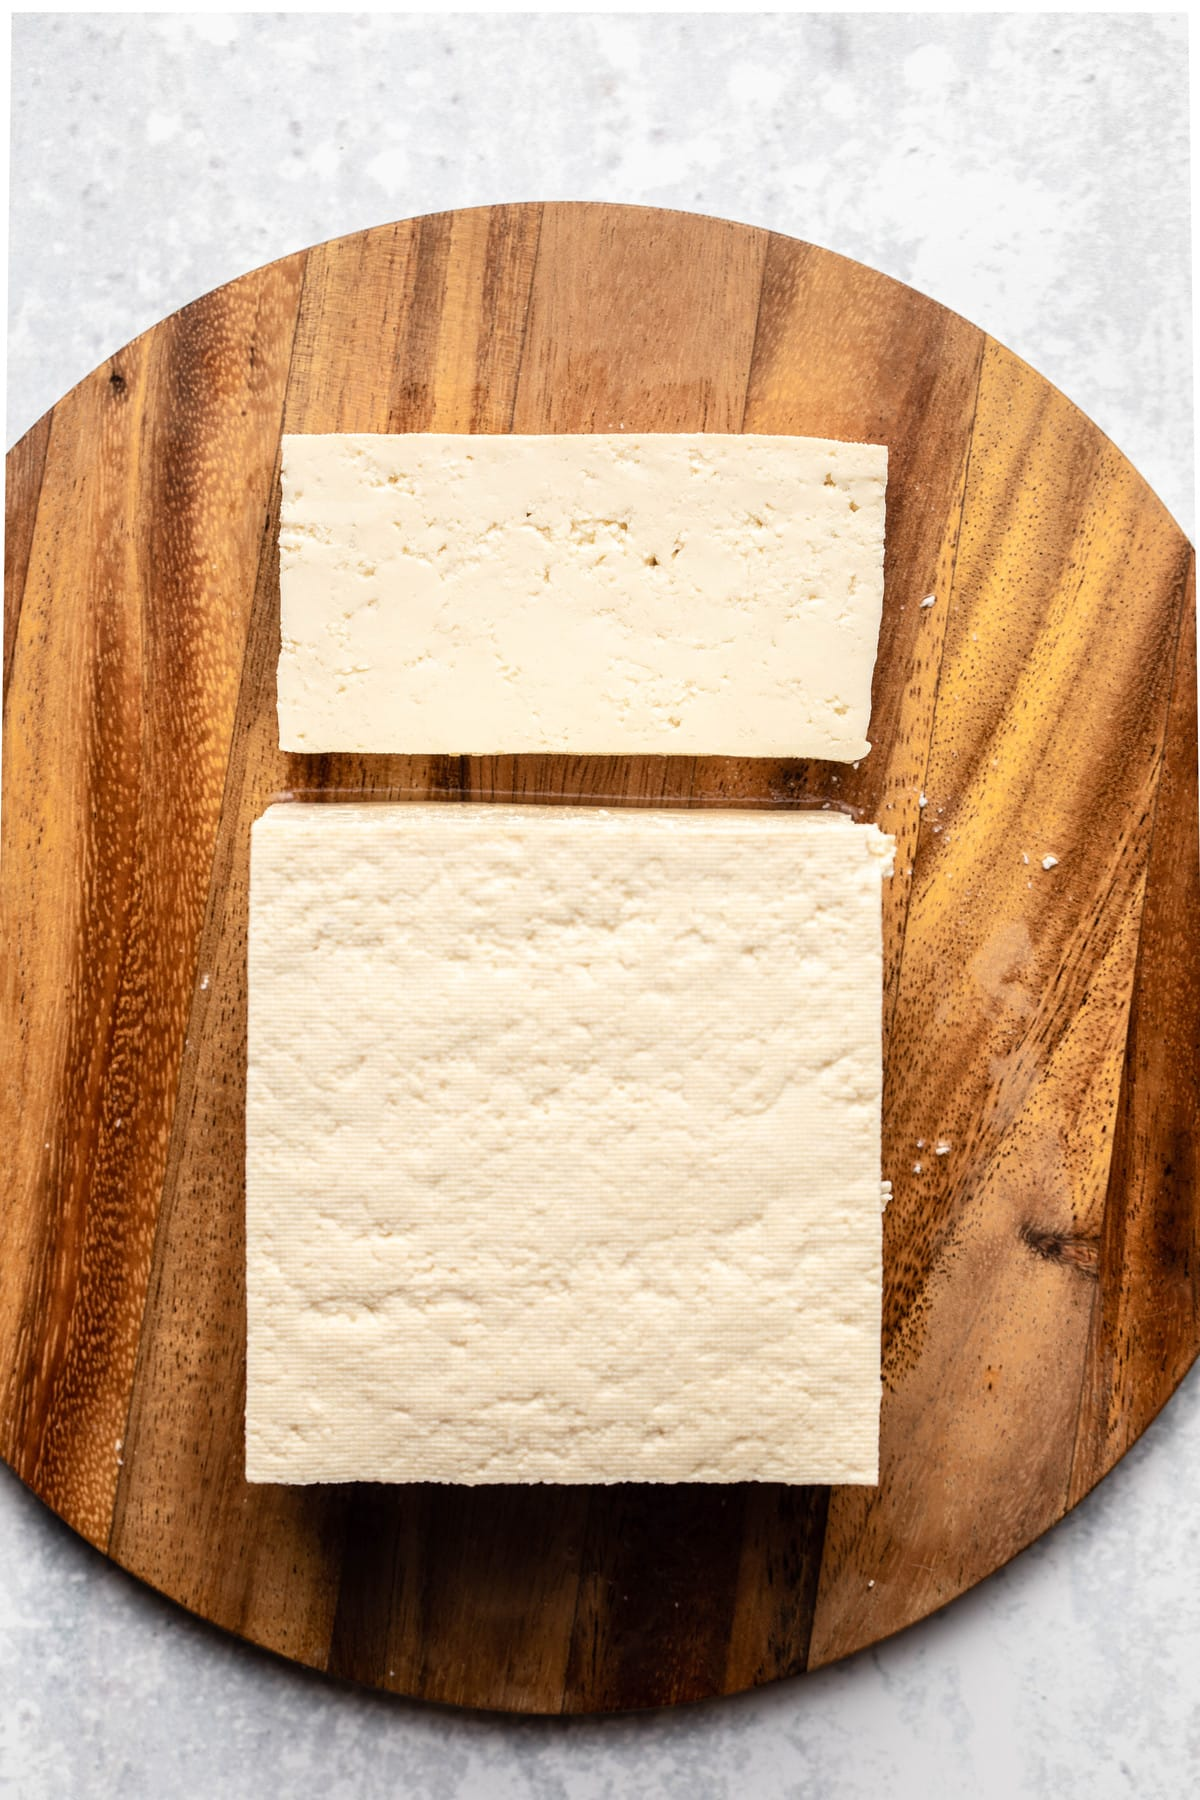 block of extra firm tofu on round cutting board